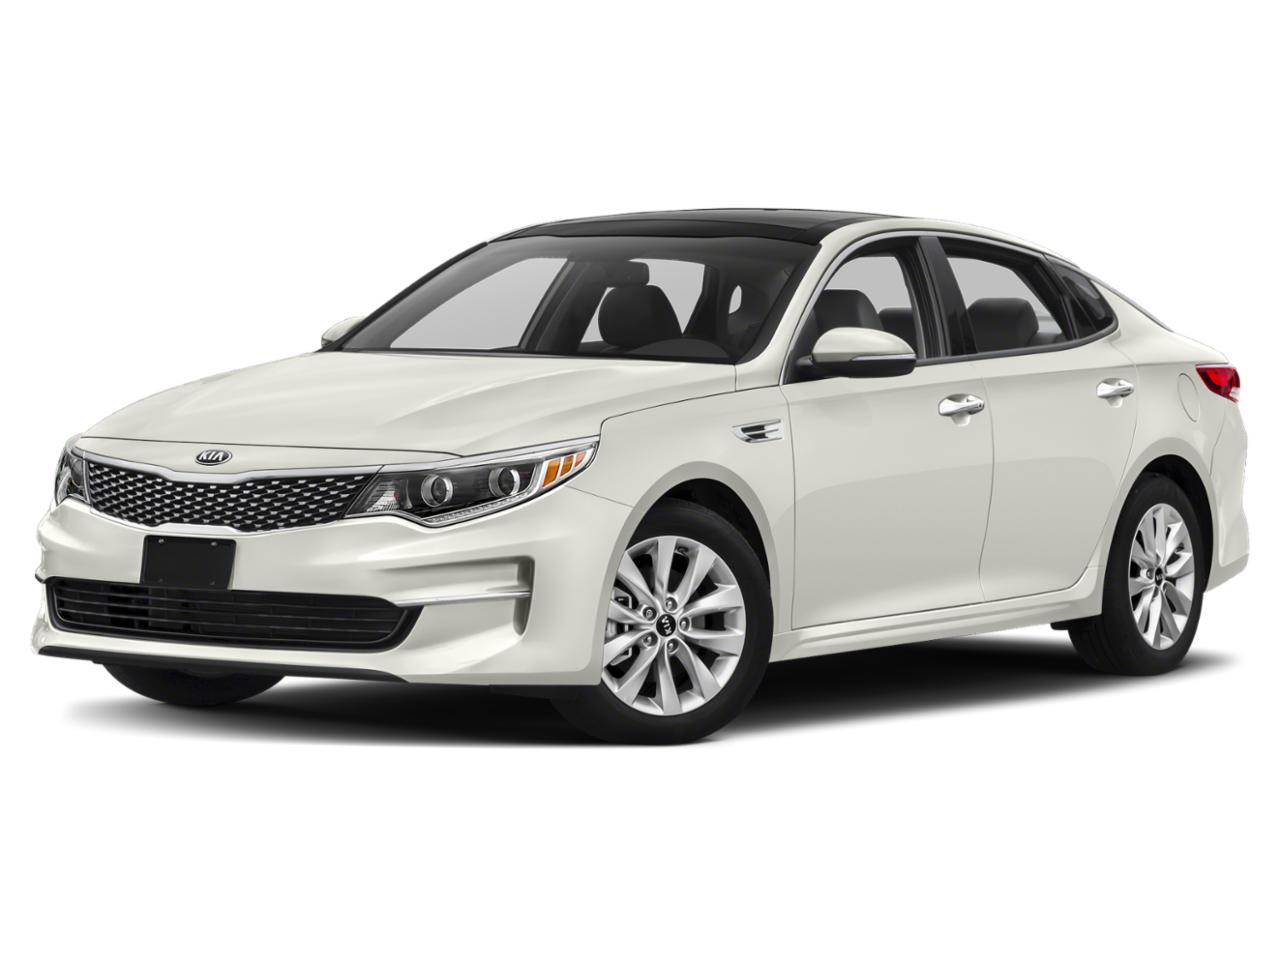 2018 Kia Optima Vehicle Photo in Baton Rouge, LA 70806